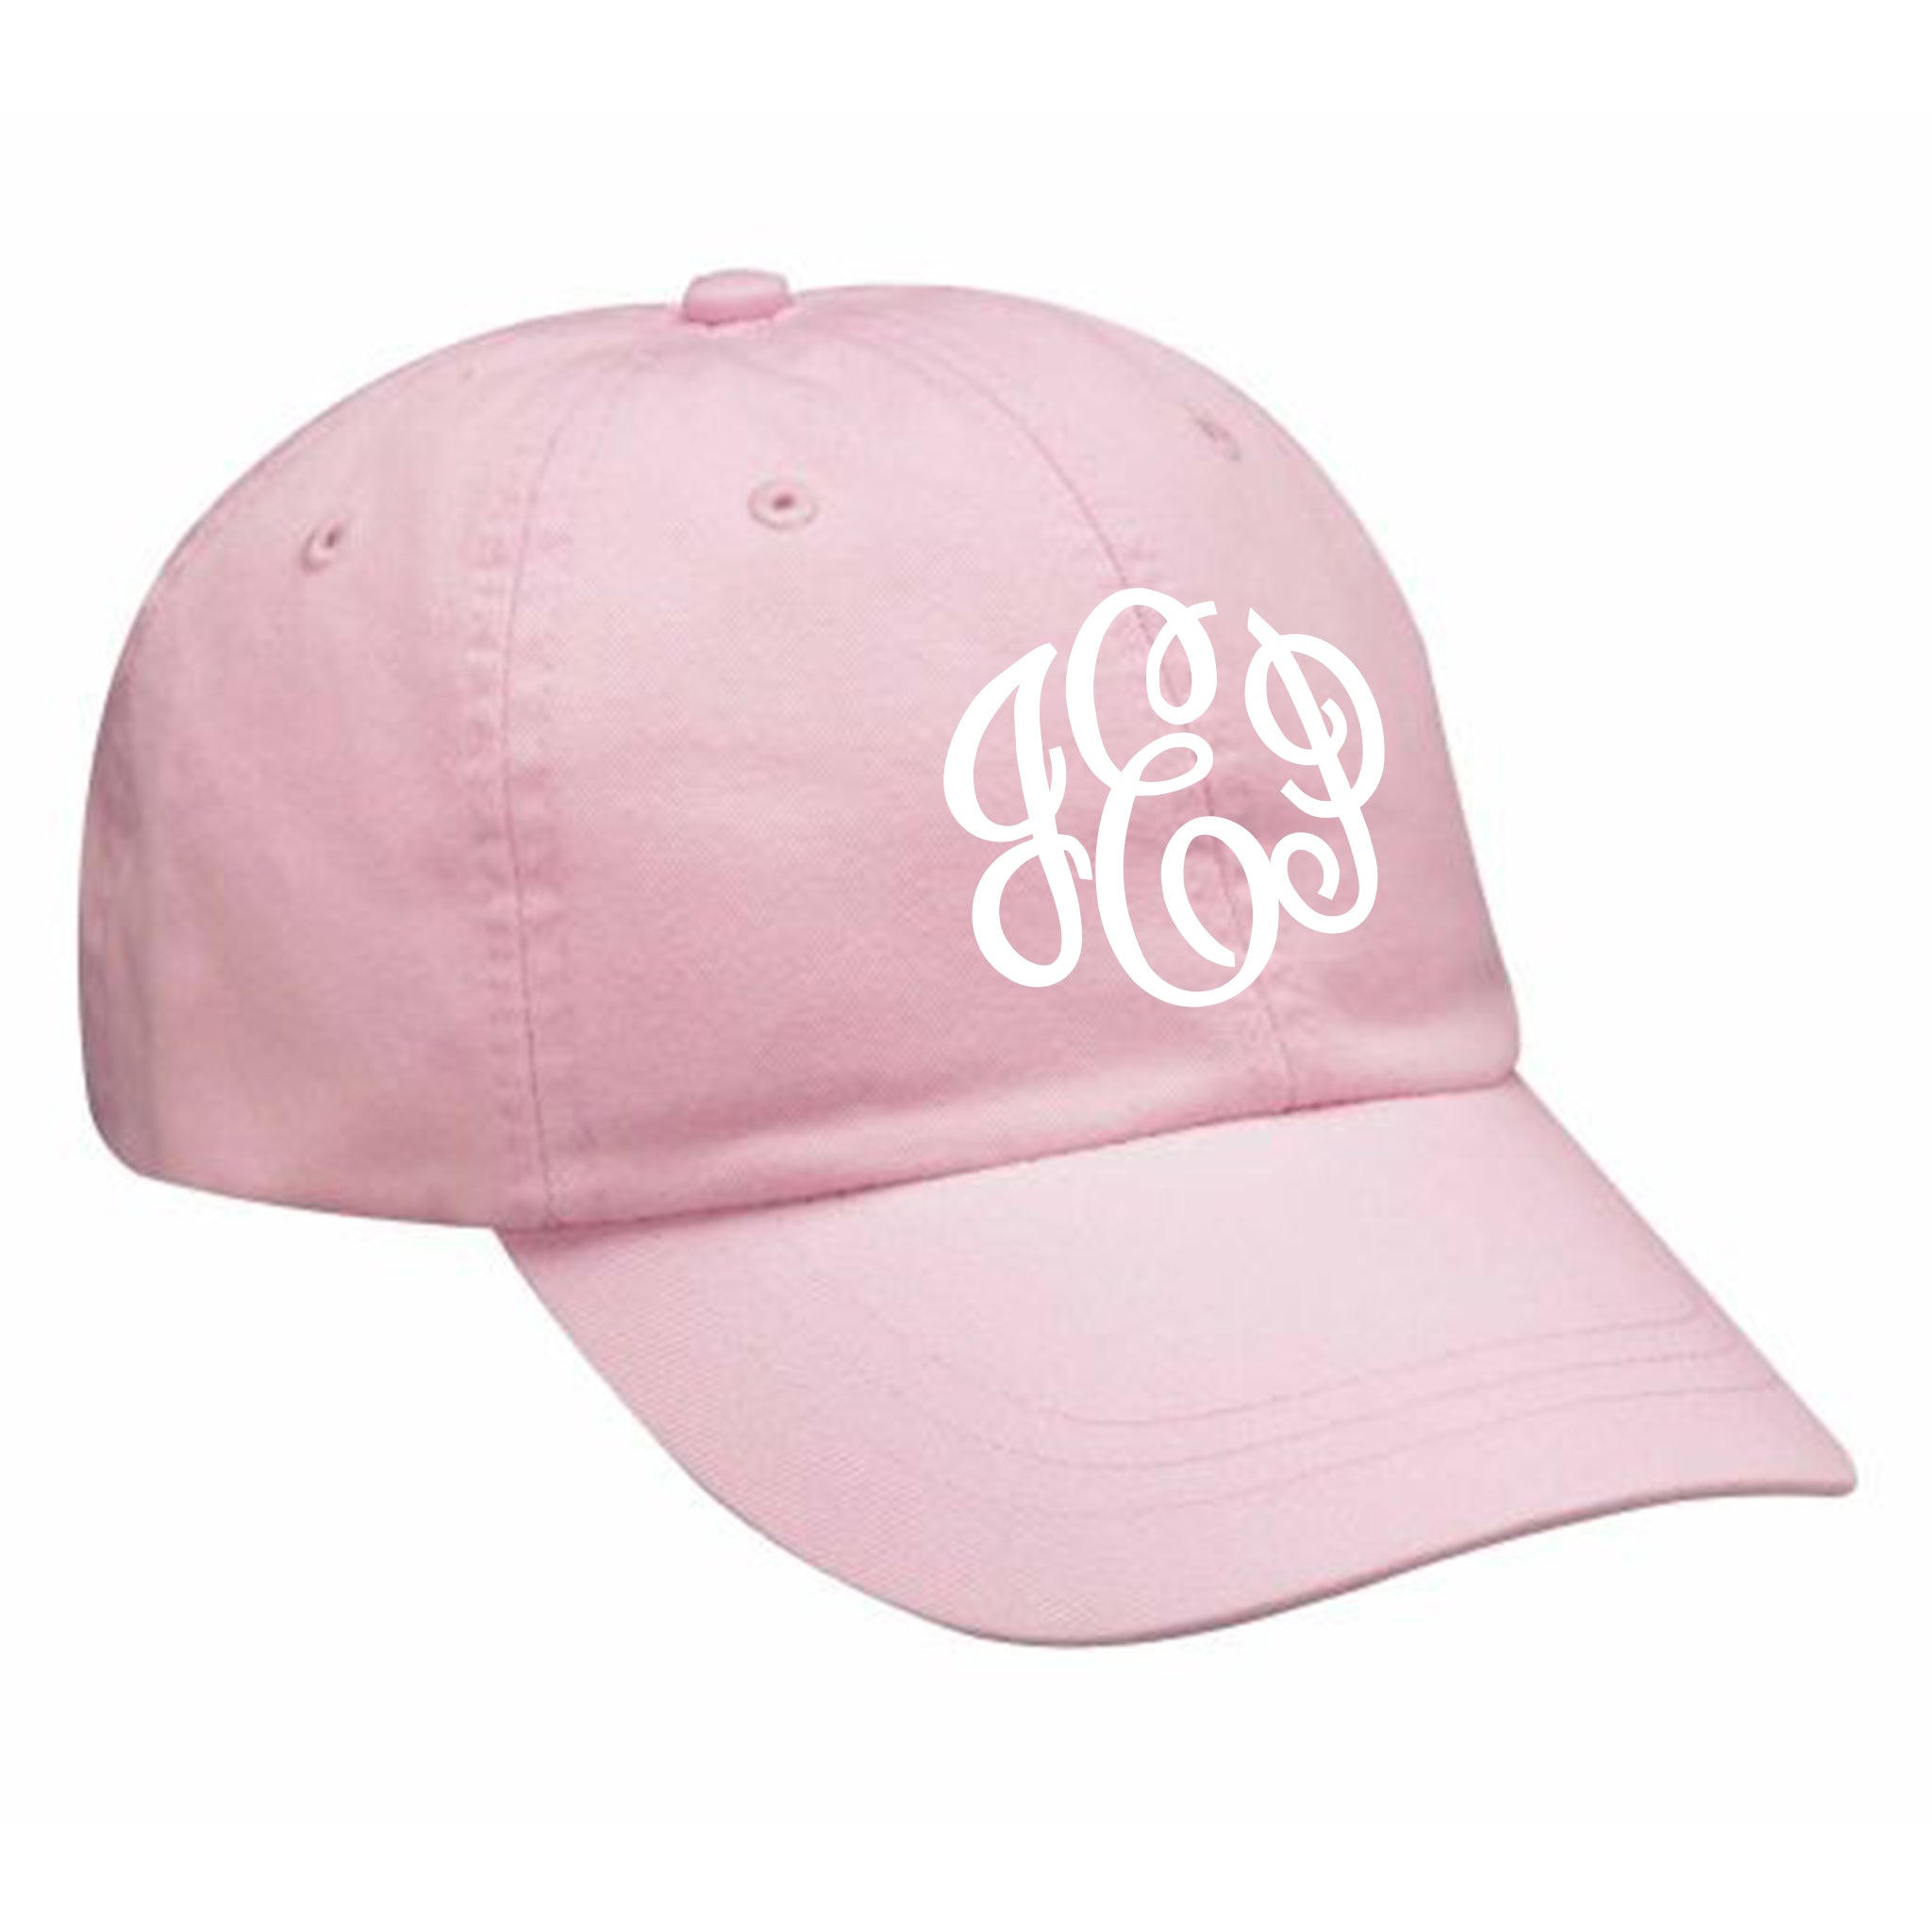 Monogram Baseball Hat in Baby Pink